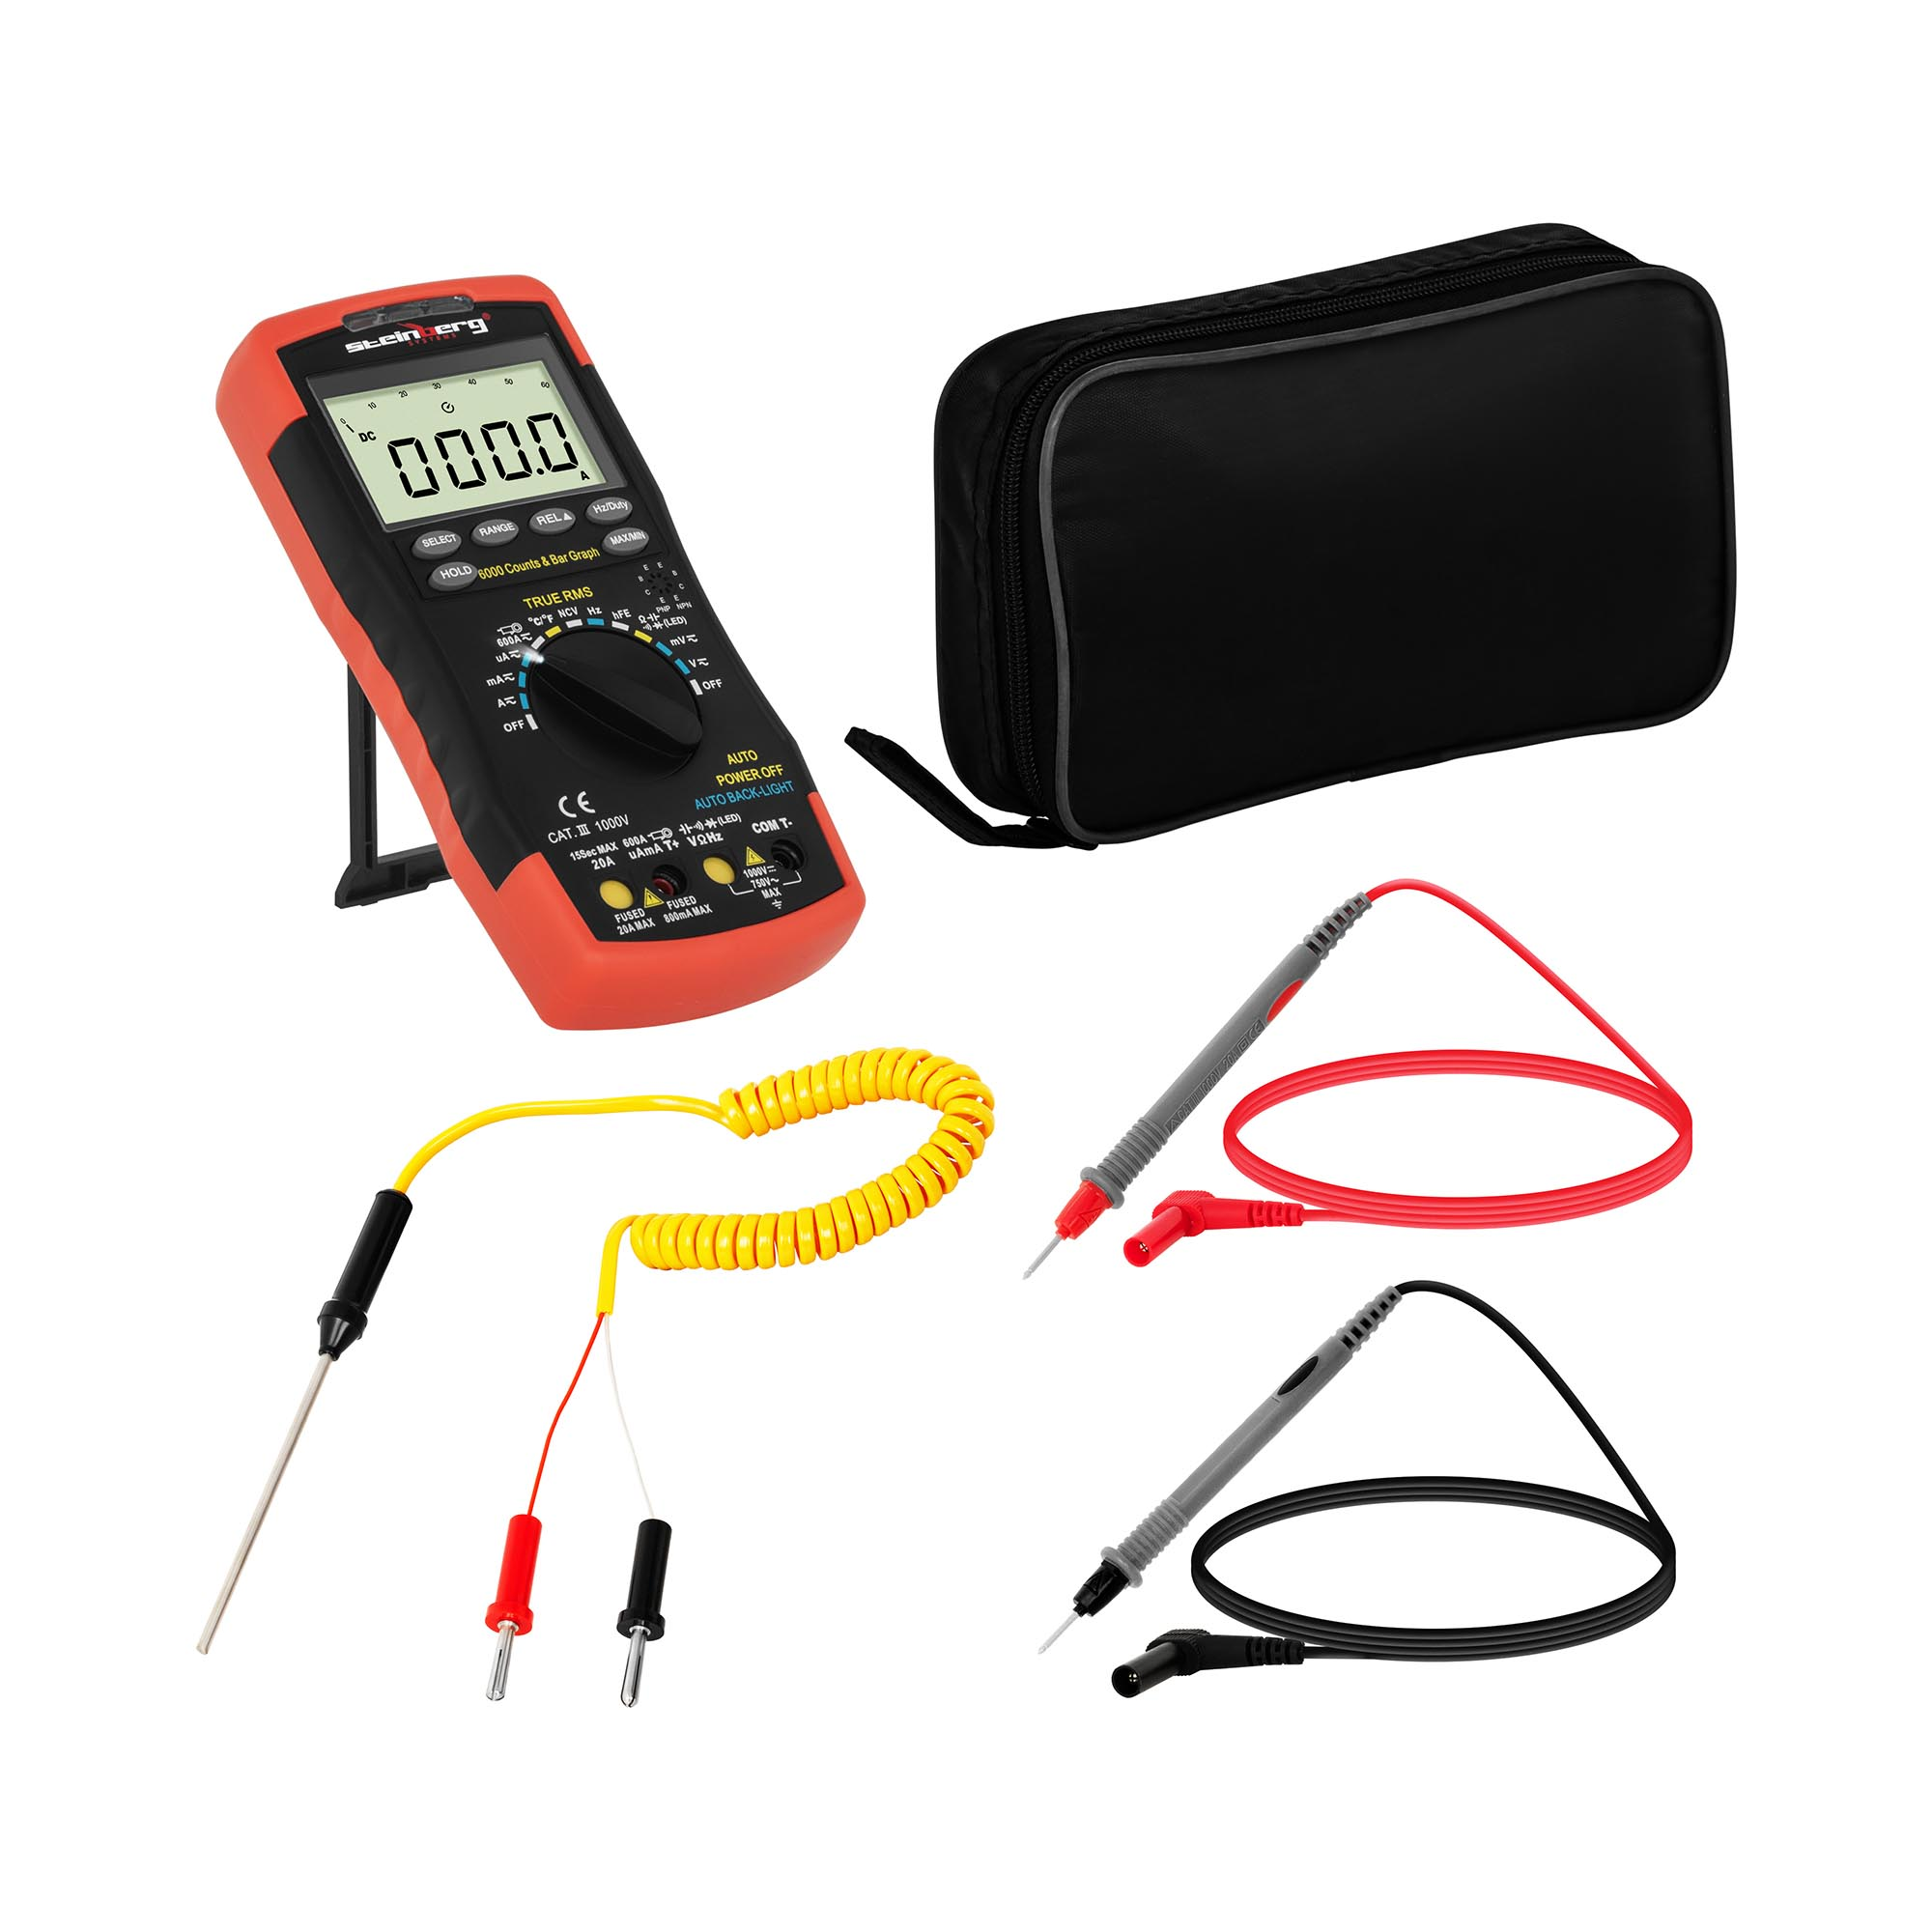 Steinberg Systems Multimeter - 6.000 Counts - hFE-Transitortest - NCV - Temperaturmessung - TrueRMS - Balkendiagramm SBS-DM-1000TR